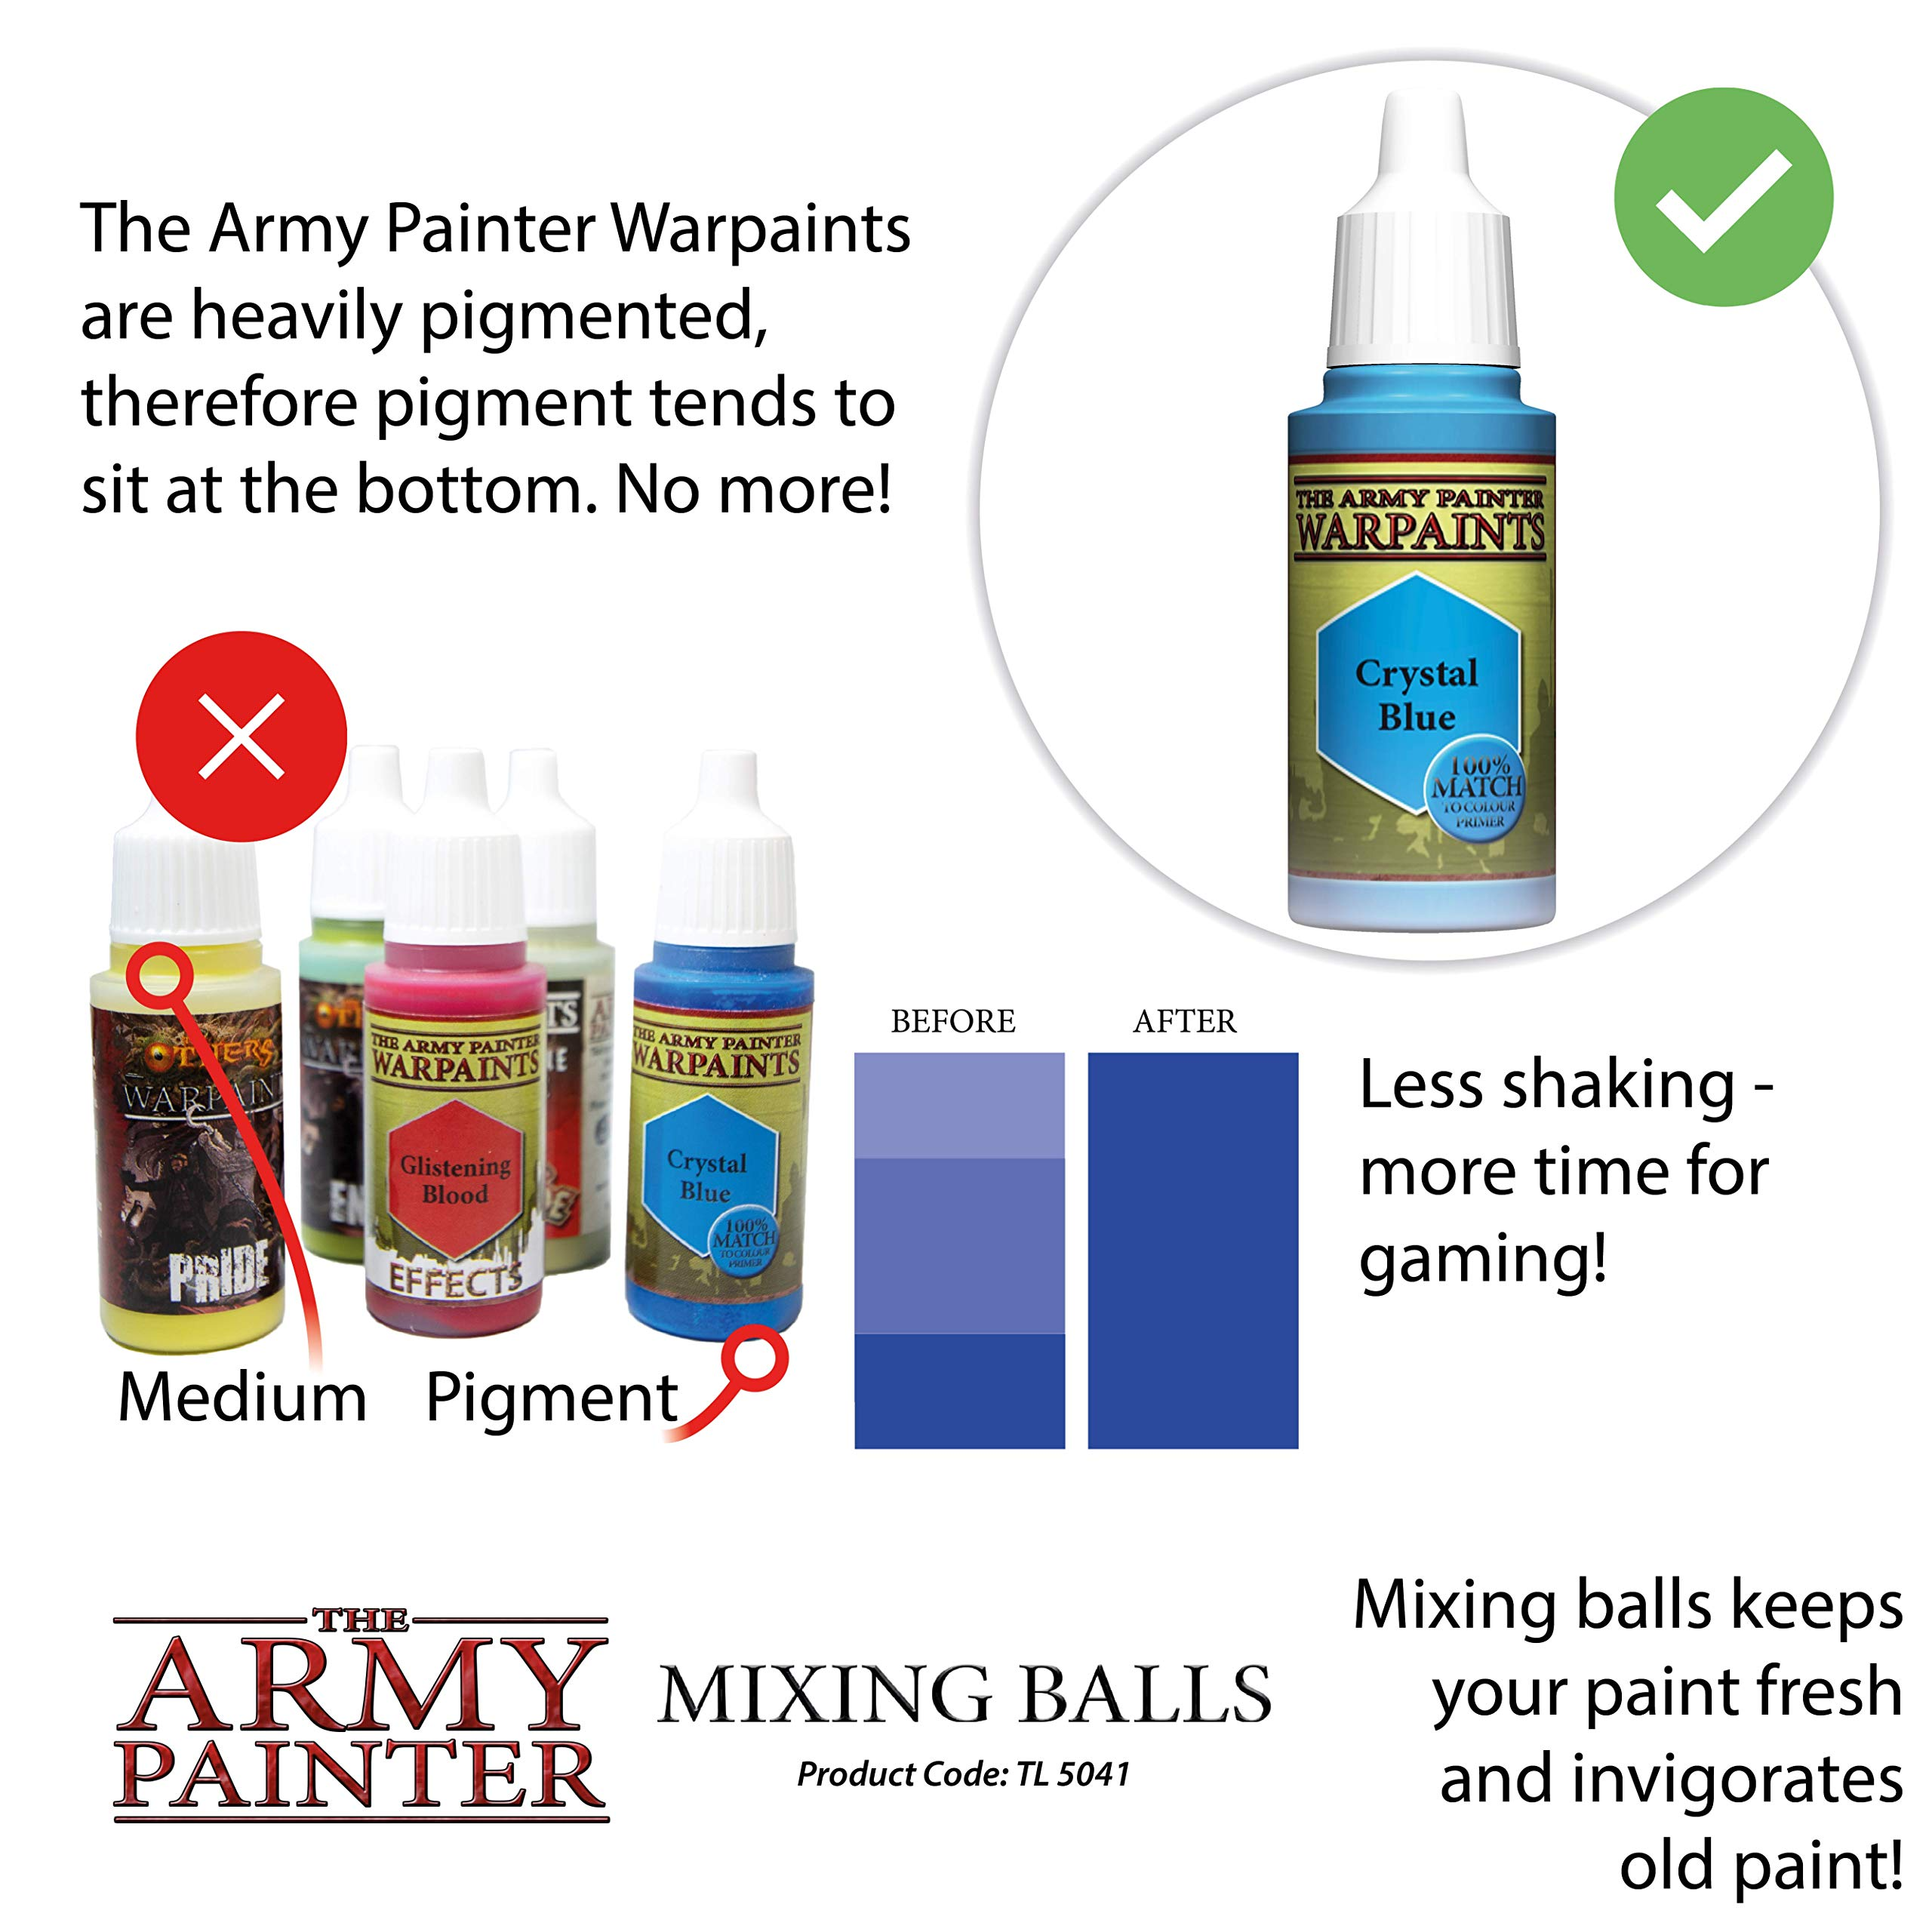 The Army Painter Paint Mixing Balls - Rust-proof Stainless Steel Balls for Mixing Model Paints - Stainless Steel Mixing Agitator Balls, 5.5mm/apr. 0.22'', 100 Pcs by The Army Painter (Image #5)